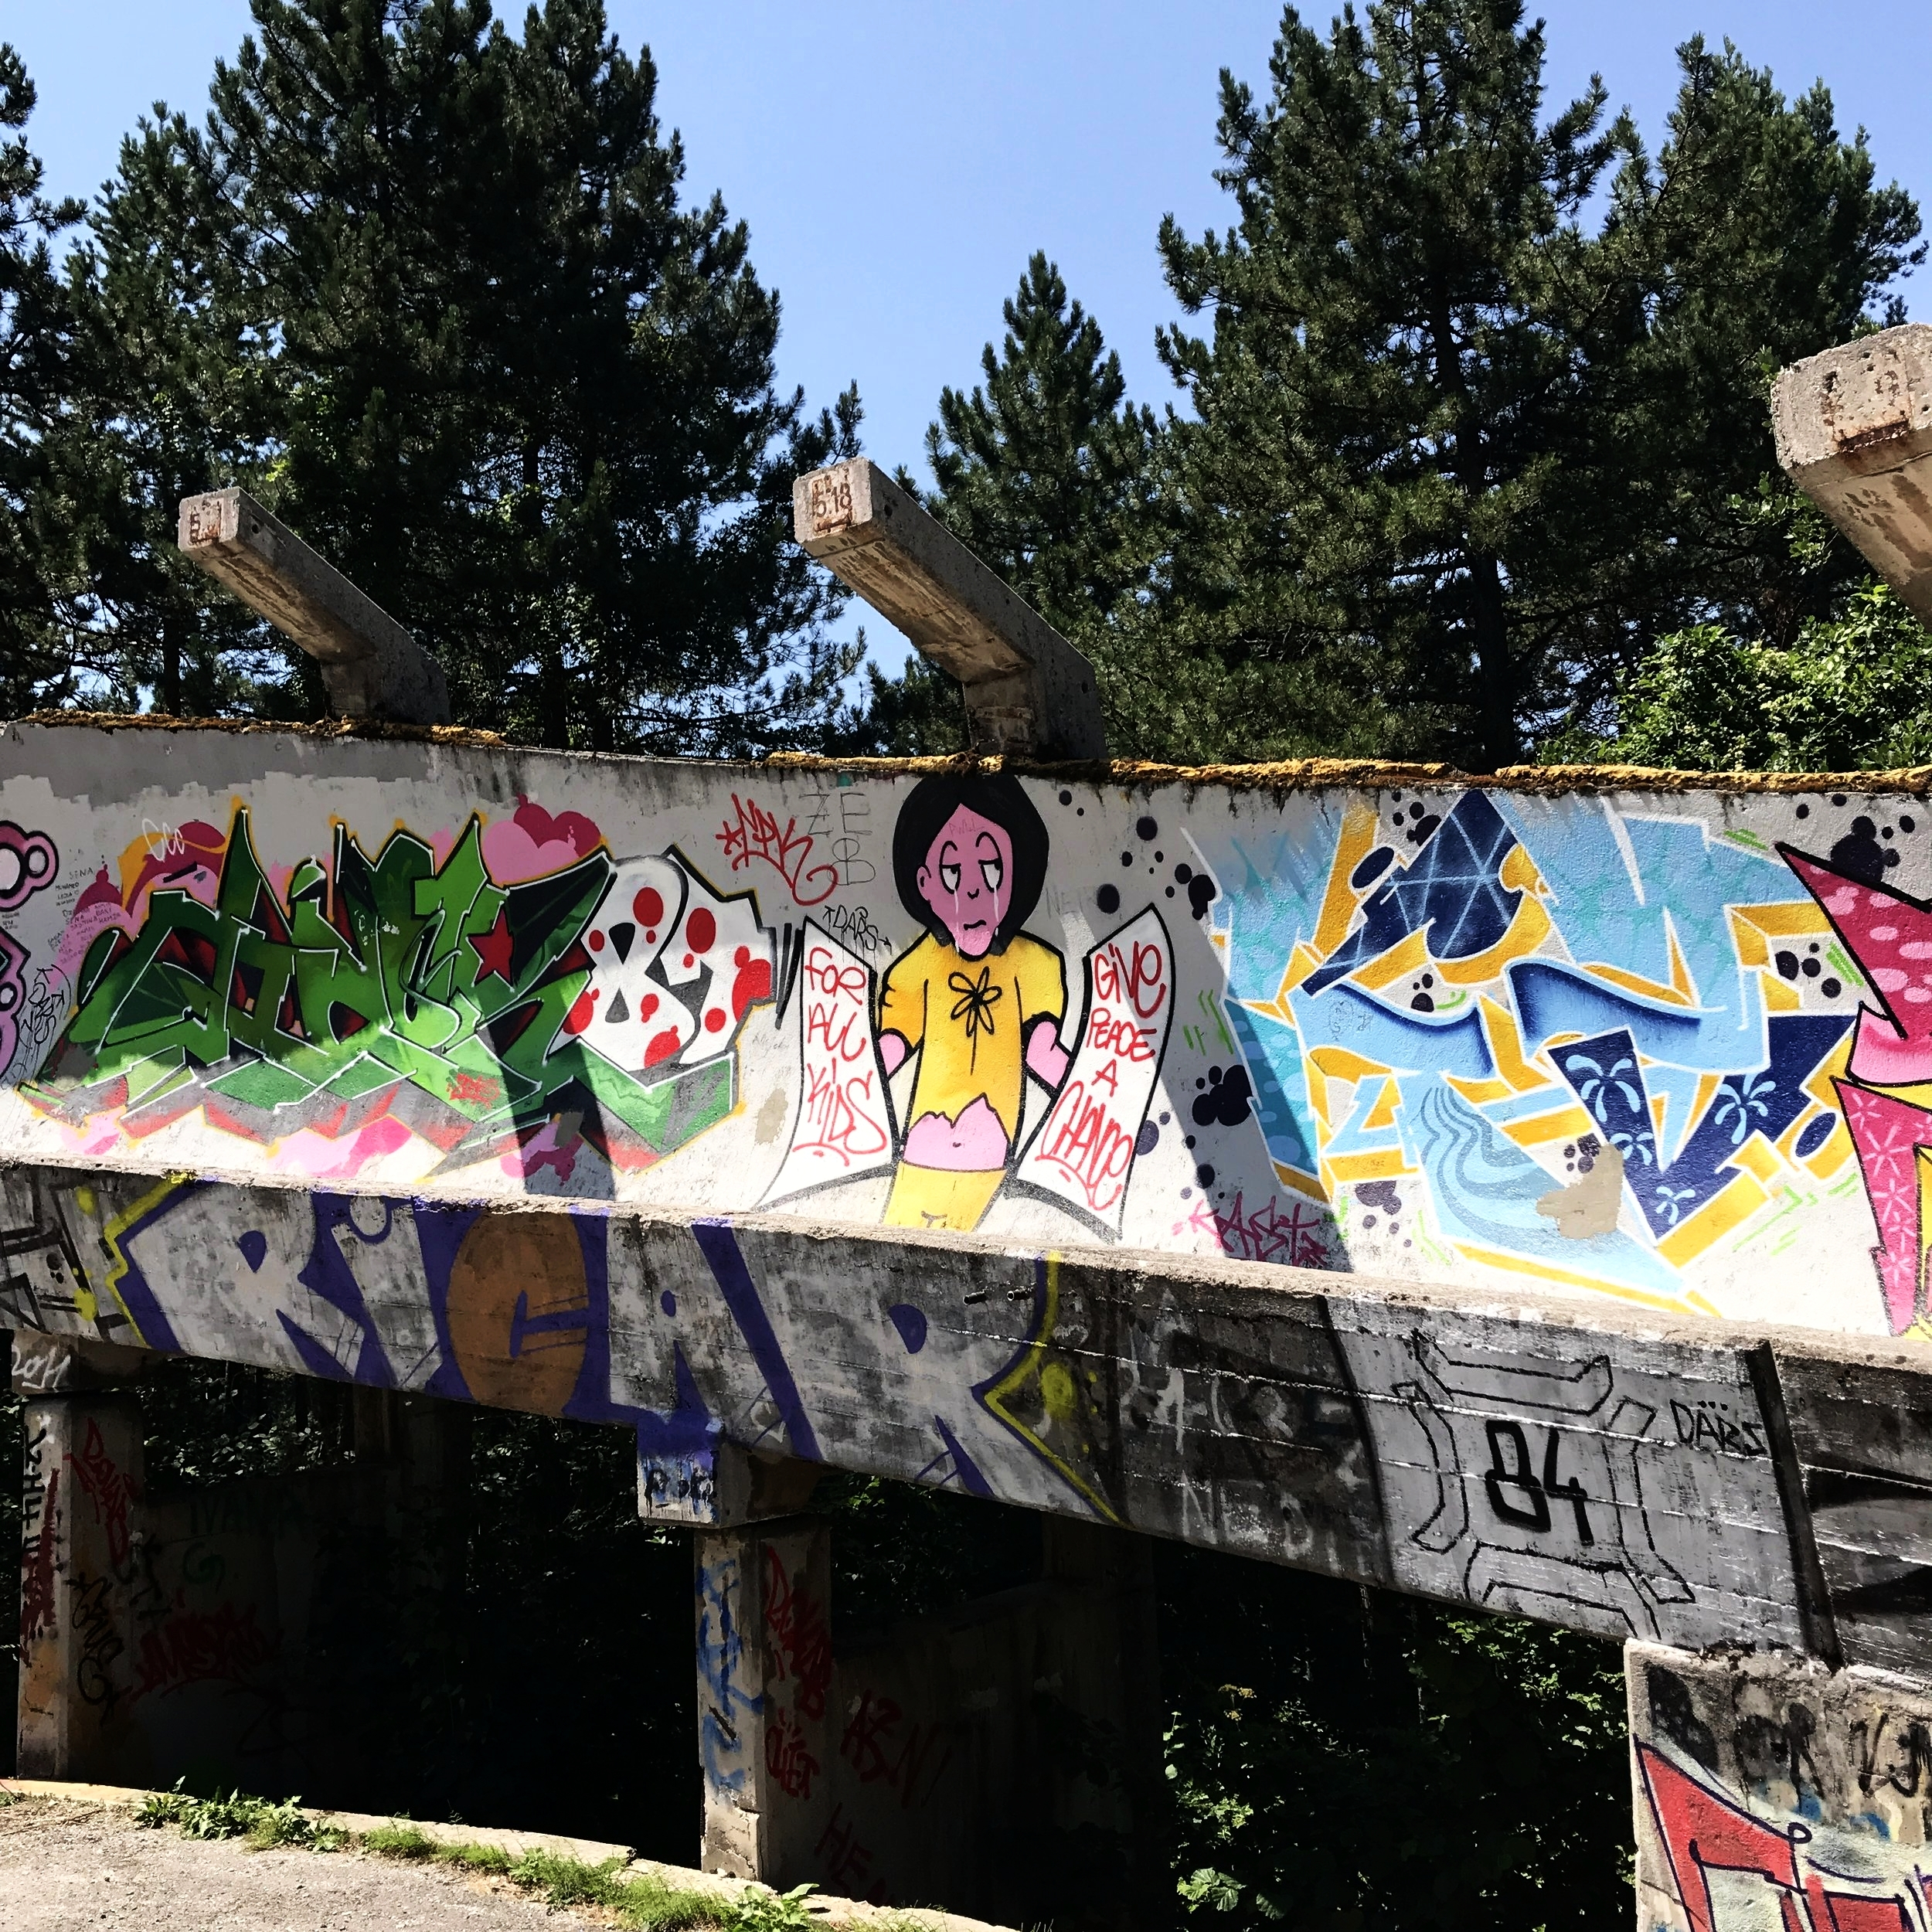 Graffiti remains of the bobsled track from the 1984 Winter Olympics.People stole metal out of here for scrap, and it sort of fell into disrepair until 2014, when it was cleaned up.